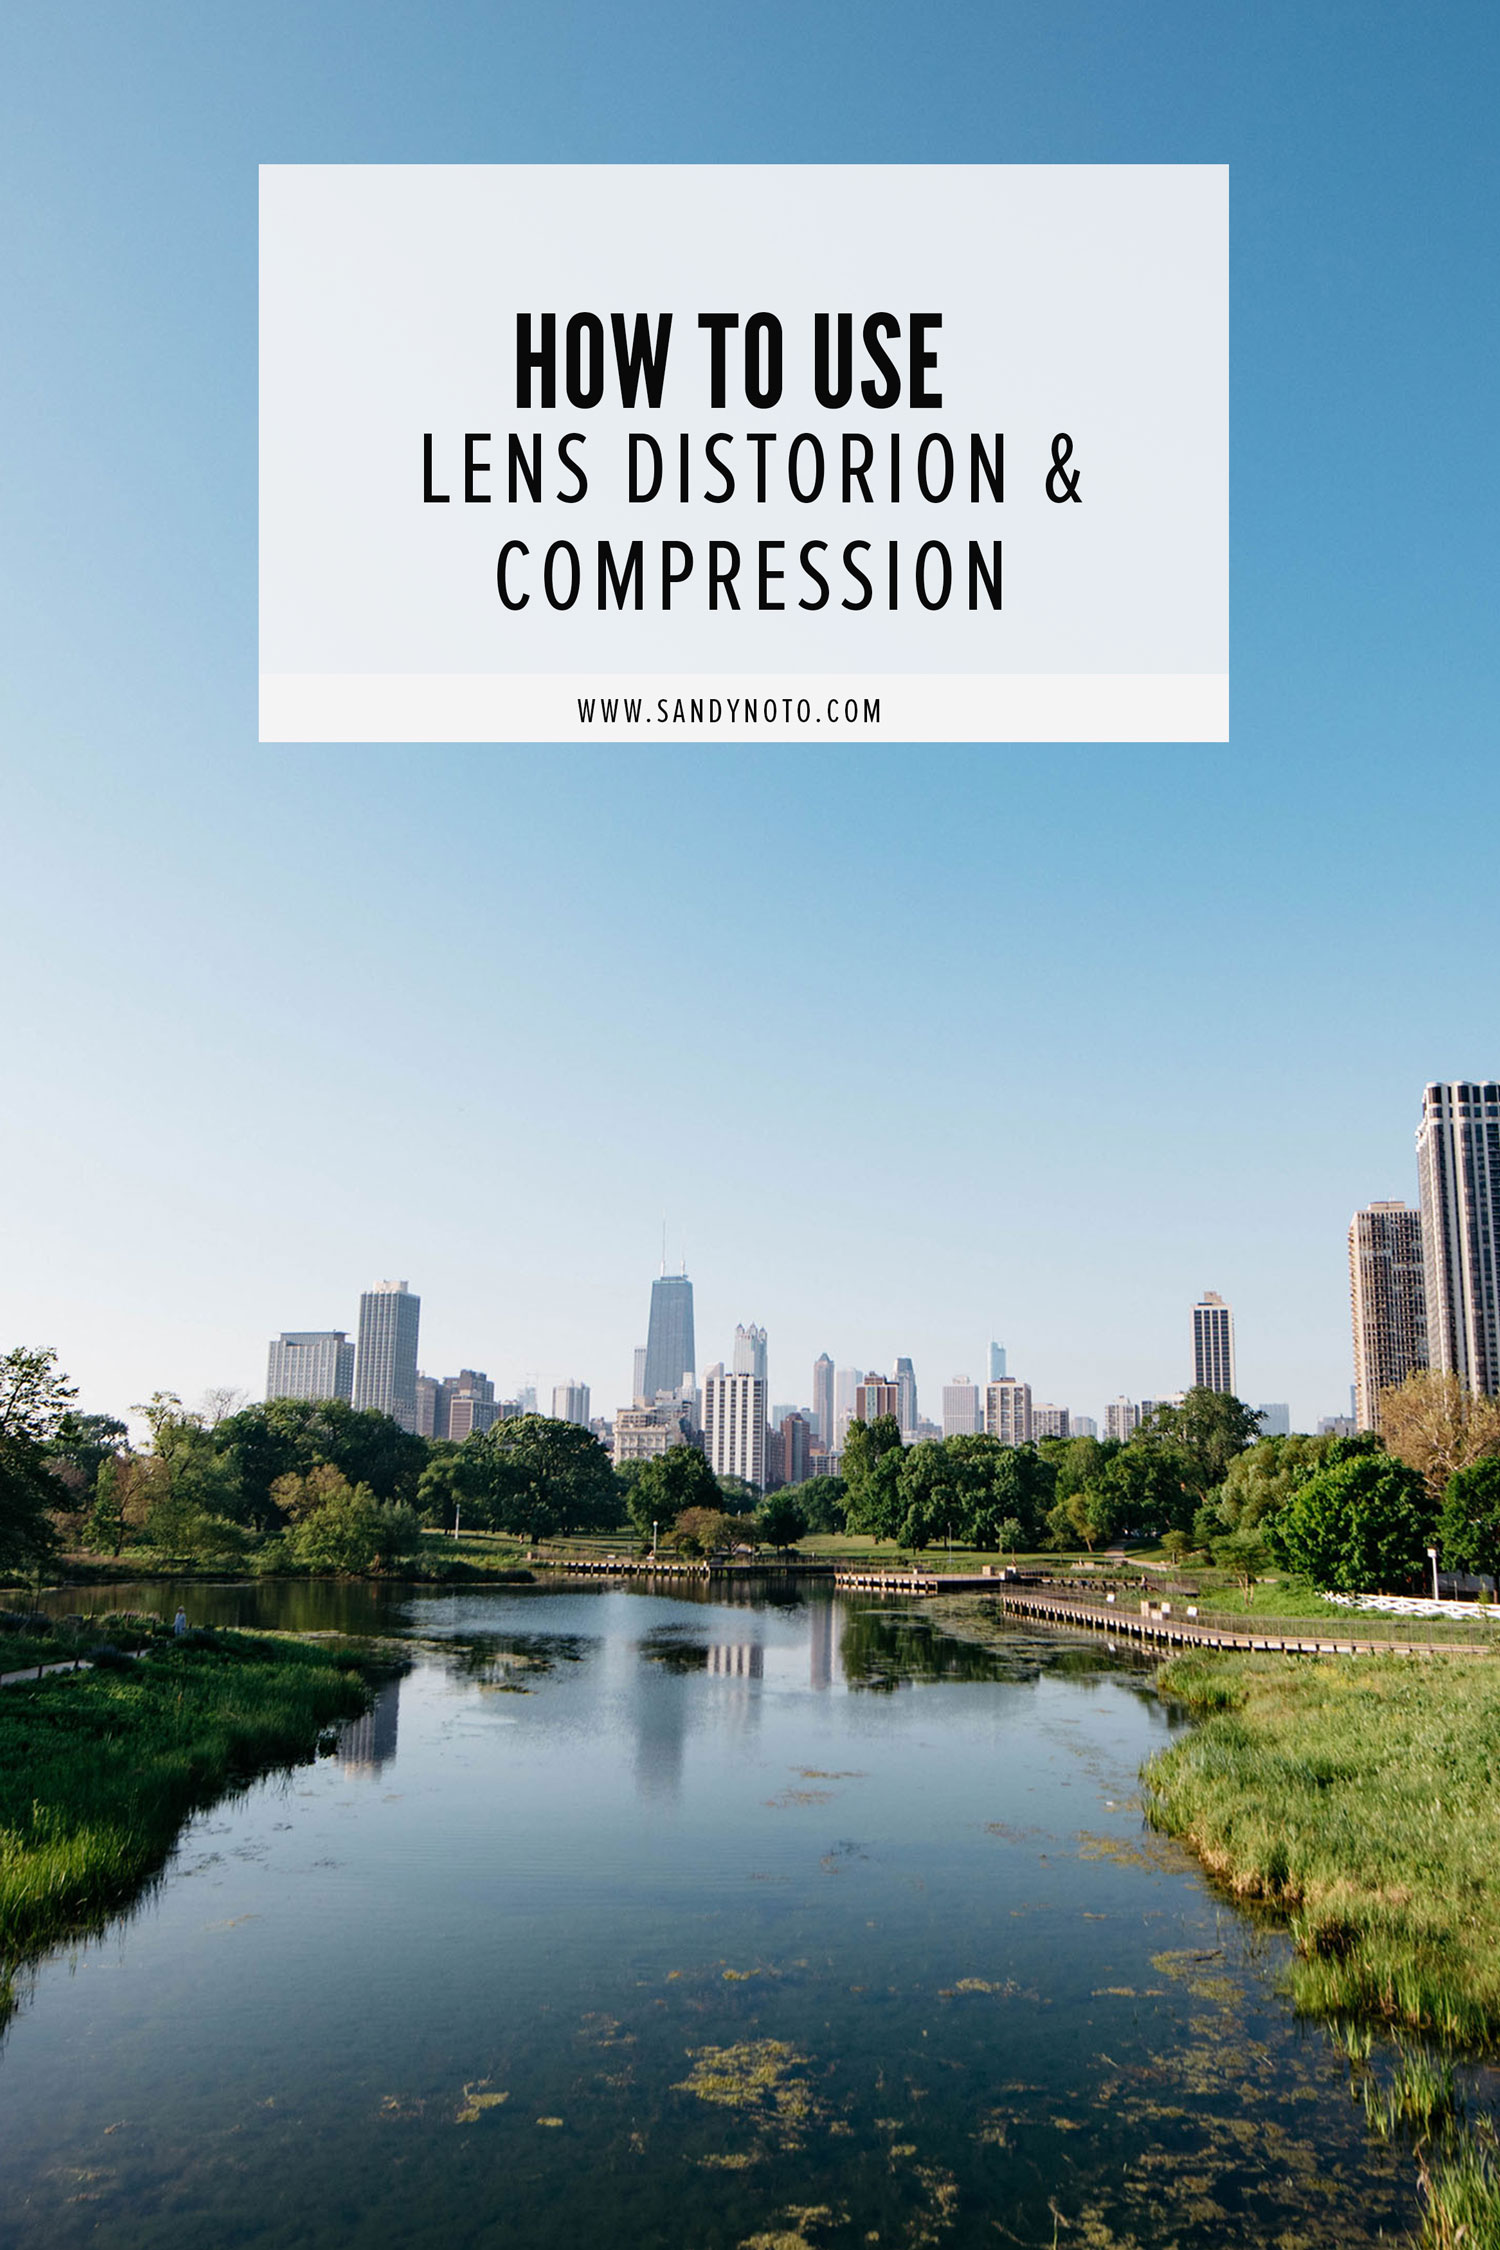 How to use lens distortion